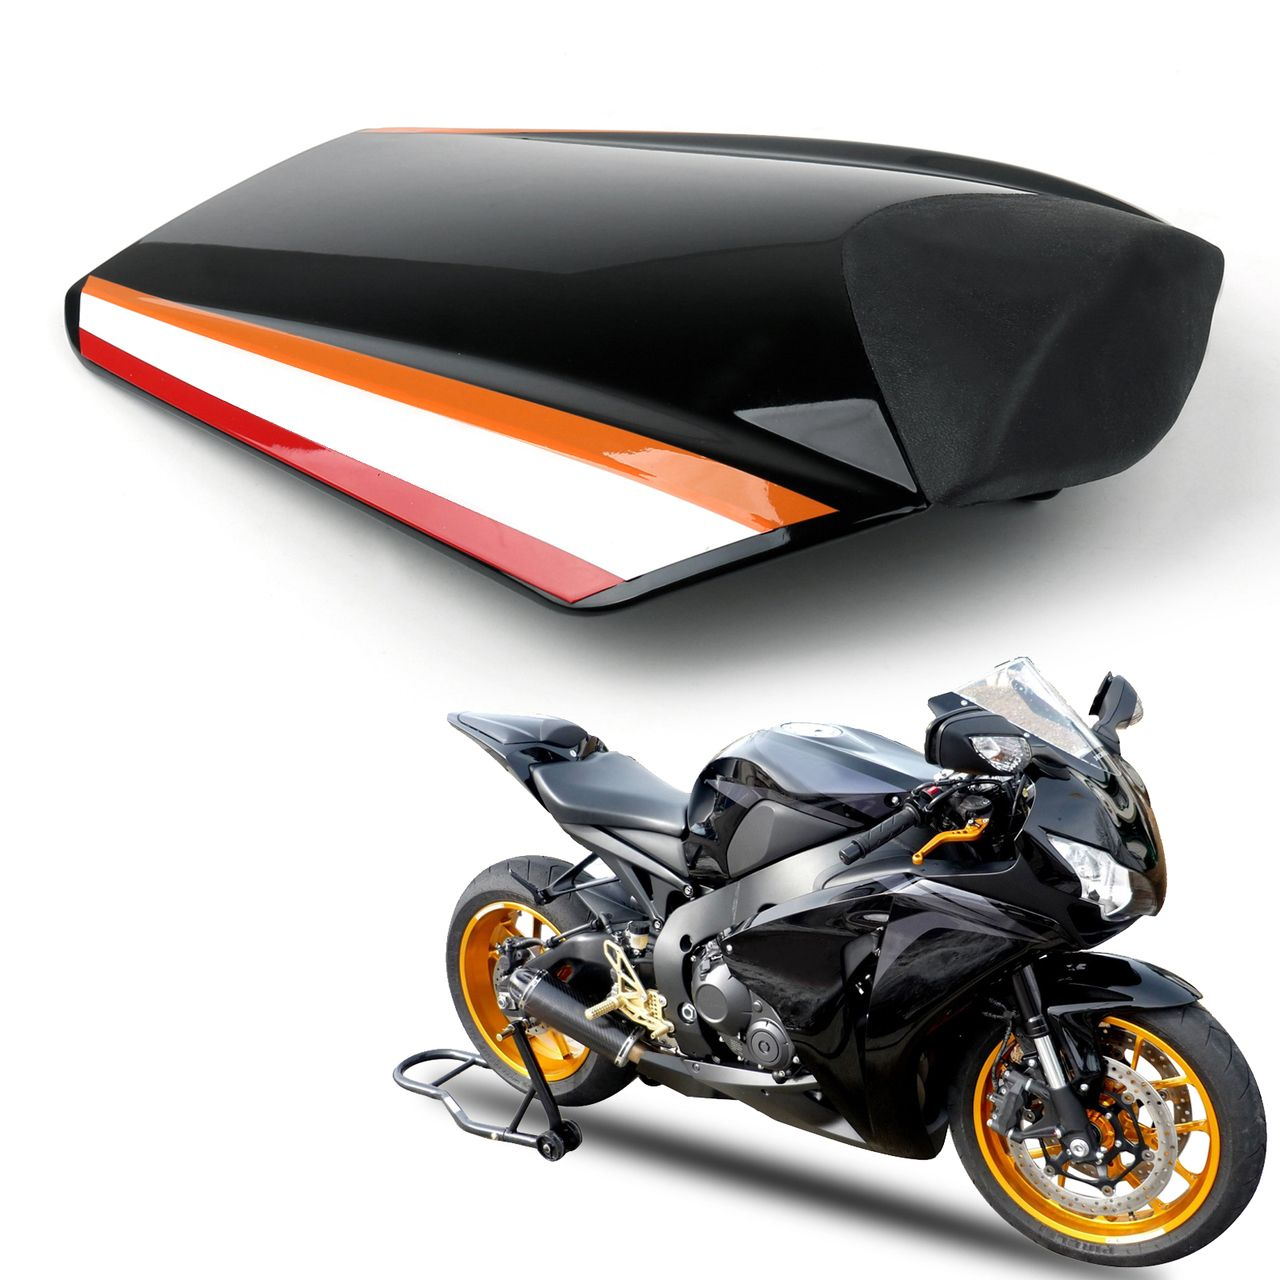 High Quality ABS Motorcycle Rear Seat Cover Cowl For BMW S1000RR 2010 2011 2012 2013 2014